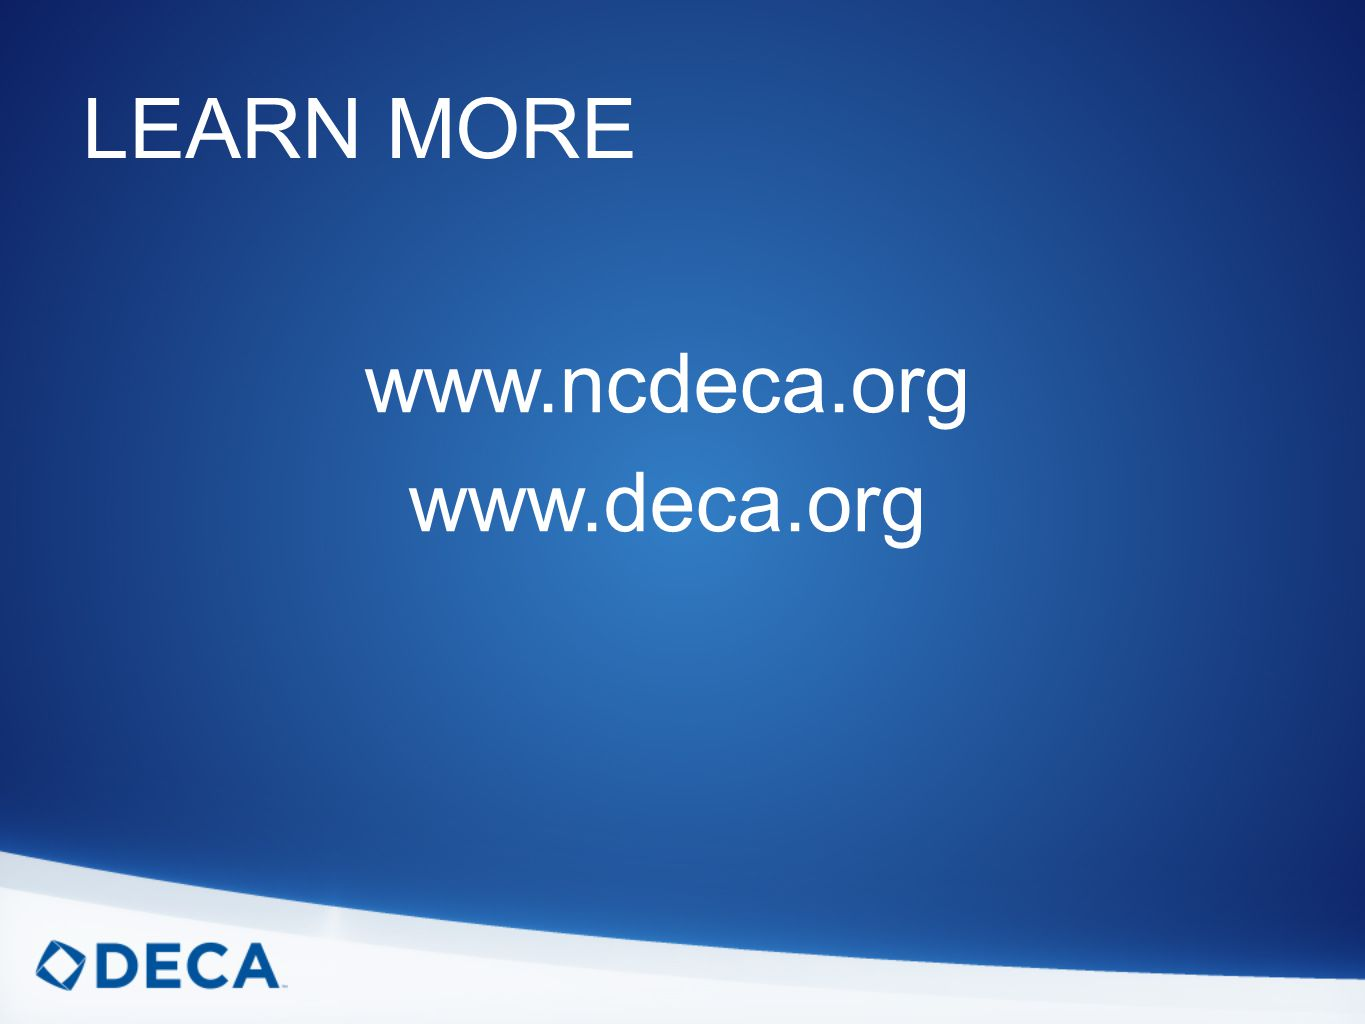 LEARN MORE www.ncdeca.org www.deca.org